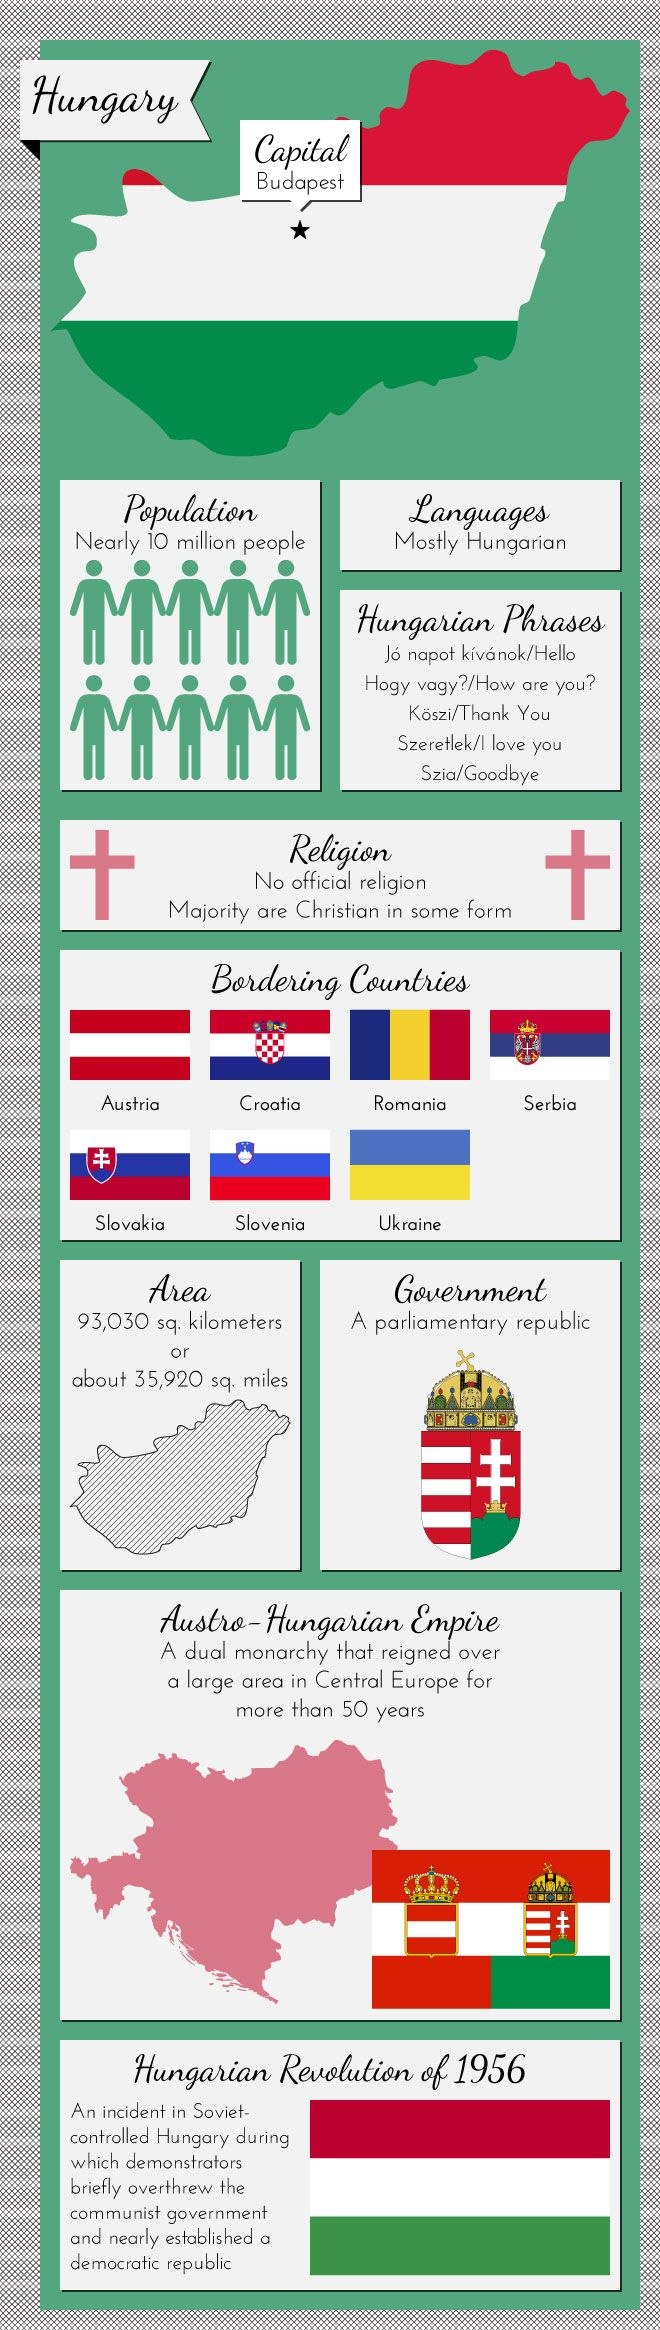 Nice blogpost about Infographic of Hungary Facts although I think the very downplayed description of the Uprising isn't impressive.